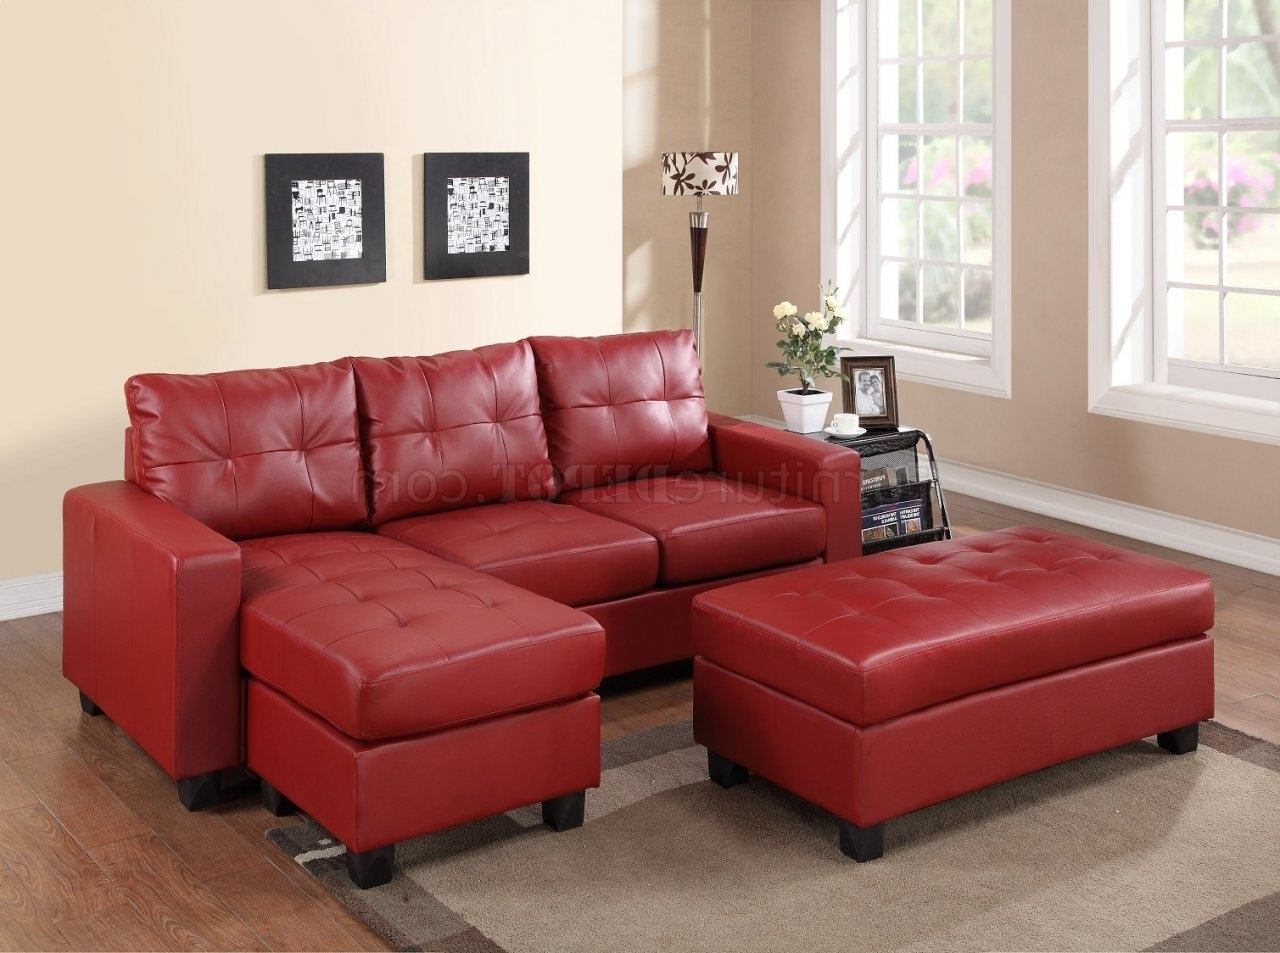 Small Red Leather Sectional Sofas Regarding 2017 2511 Sectional Sofa Set In Red Bonded Leather Match Pu (View 11 of 15)